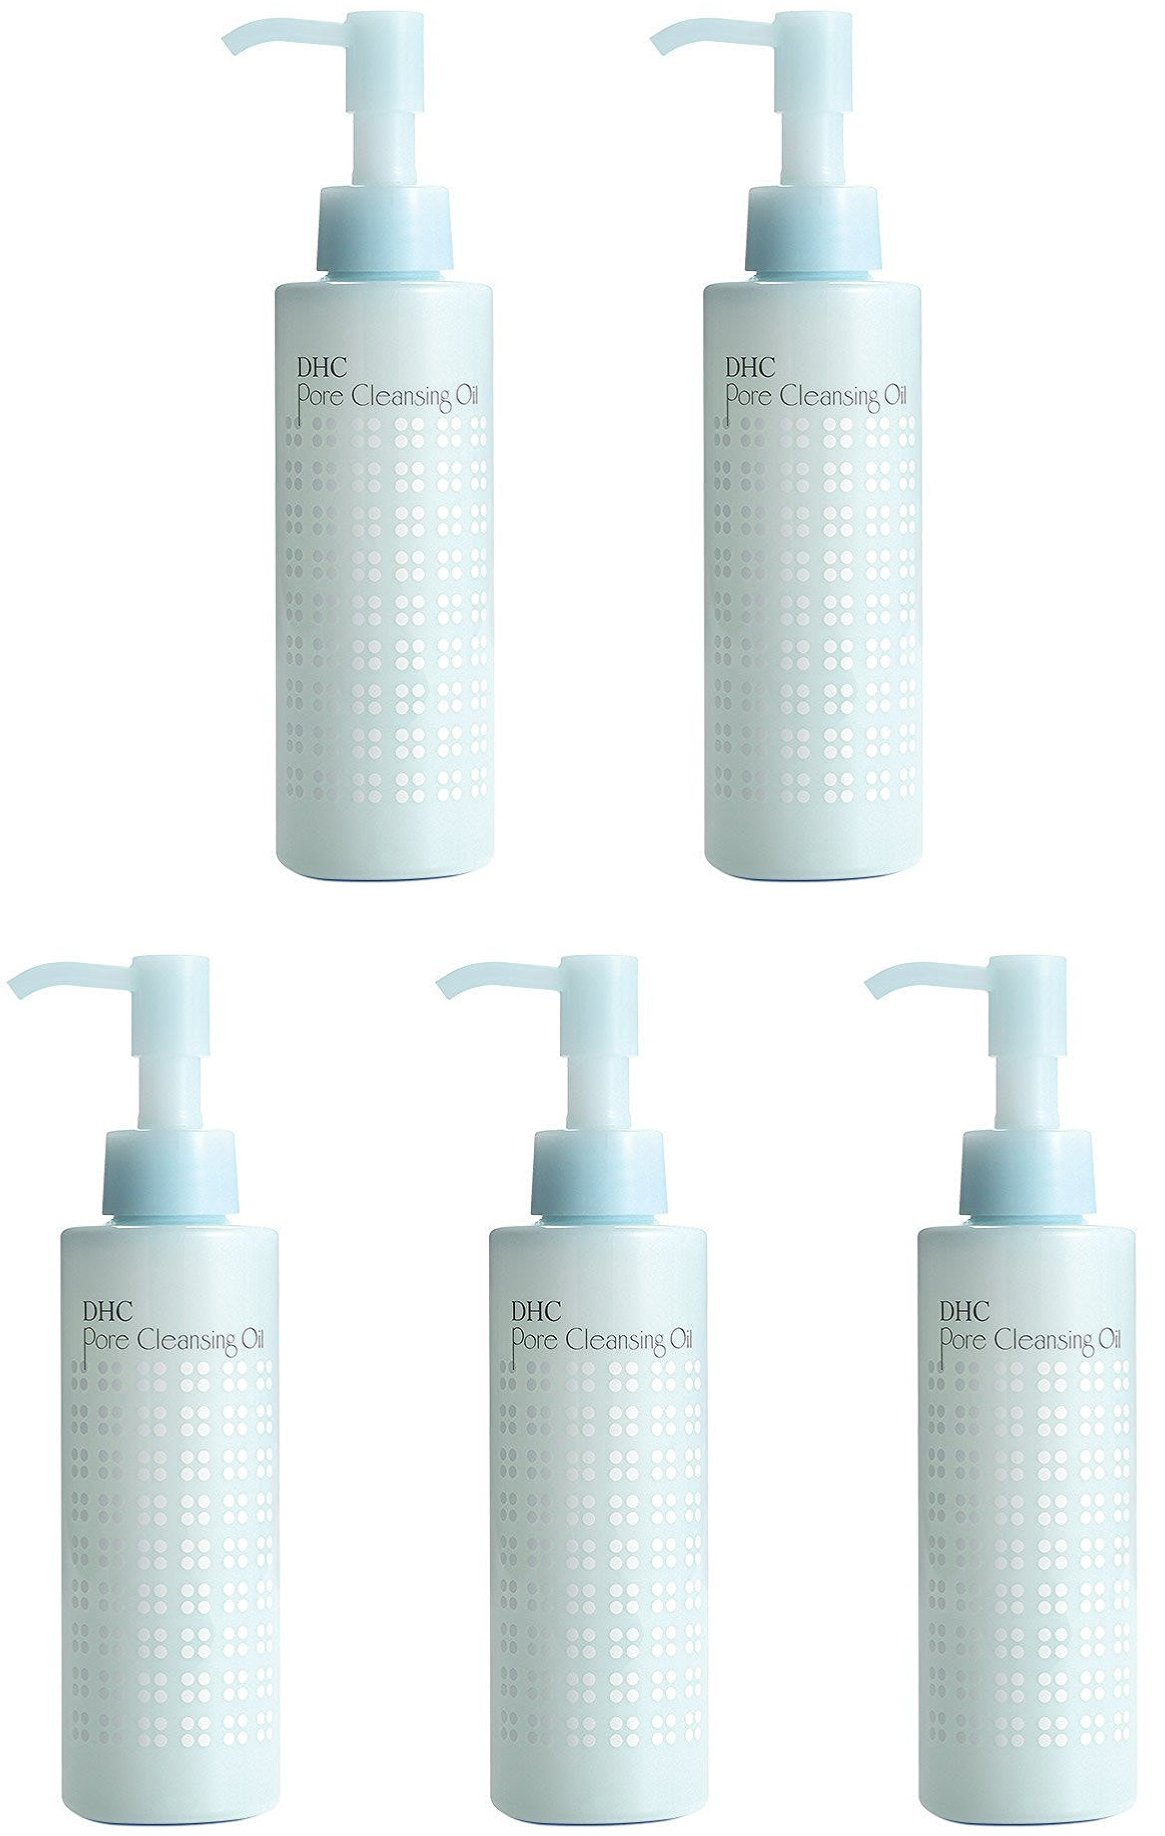 DHC Pore Cleansing Oil (Set of 5)